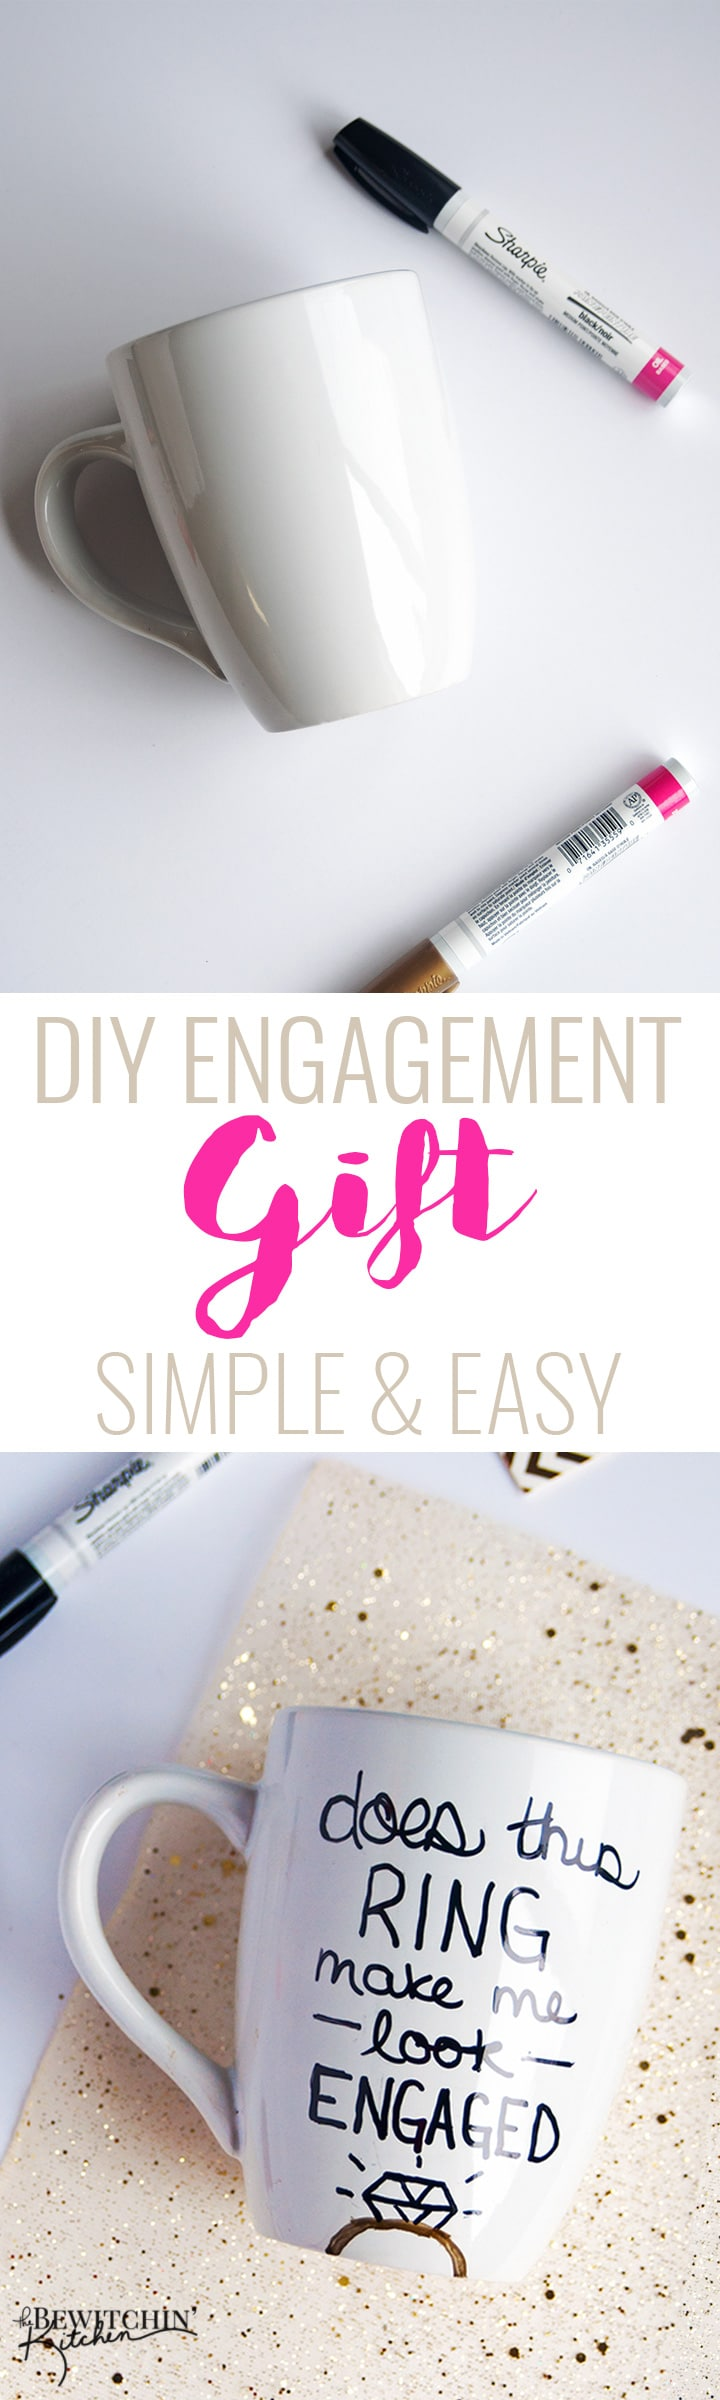 A simple and frugal DIY Engagement Gift idea! I love how easy this sharpie mug is plus the homemade gift comes from the heart. | thebewitchinkitchen.com